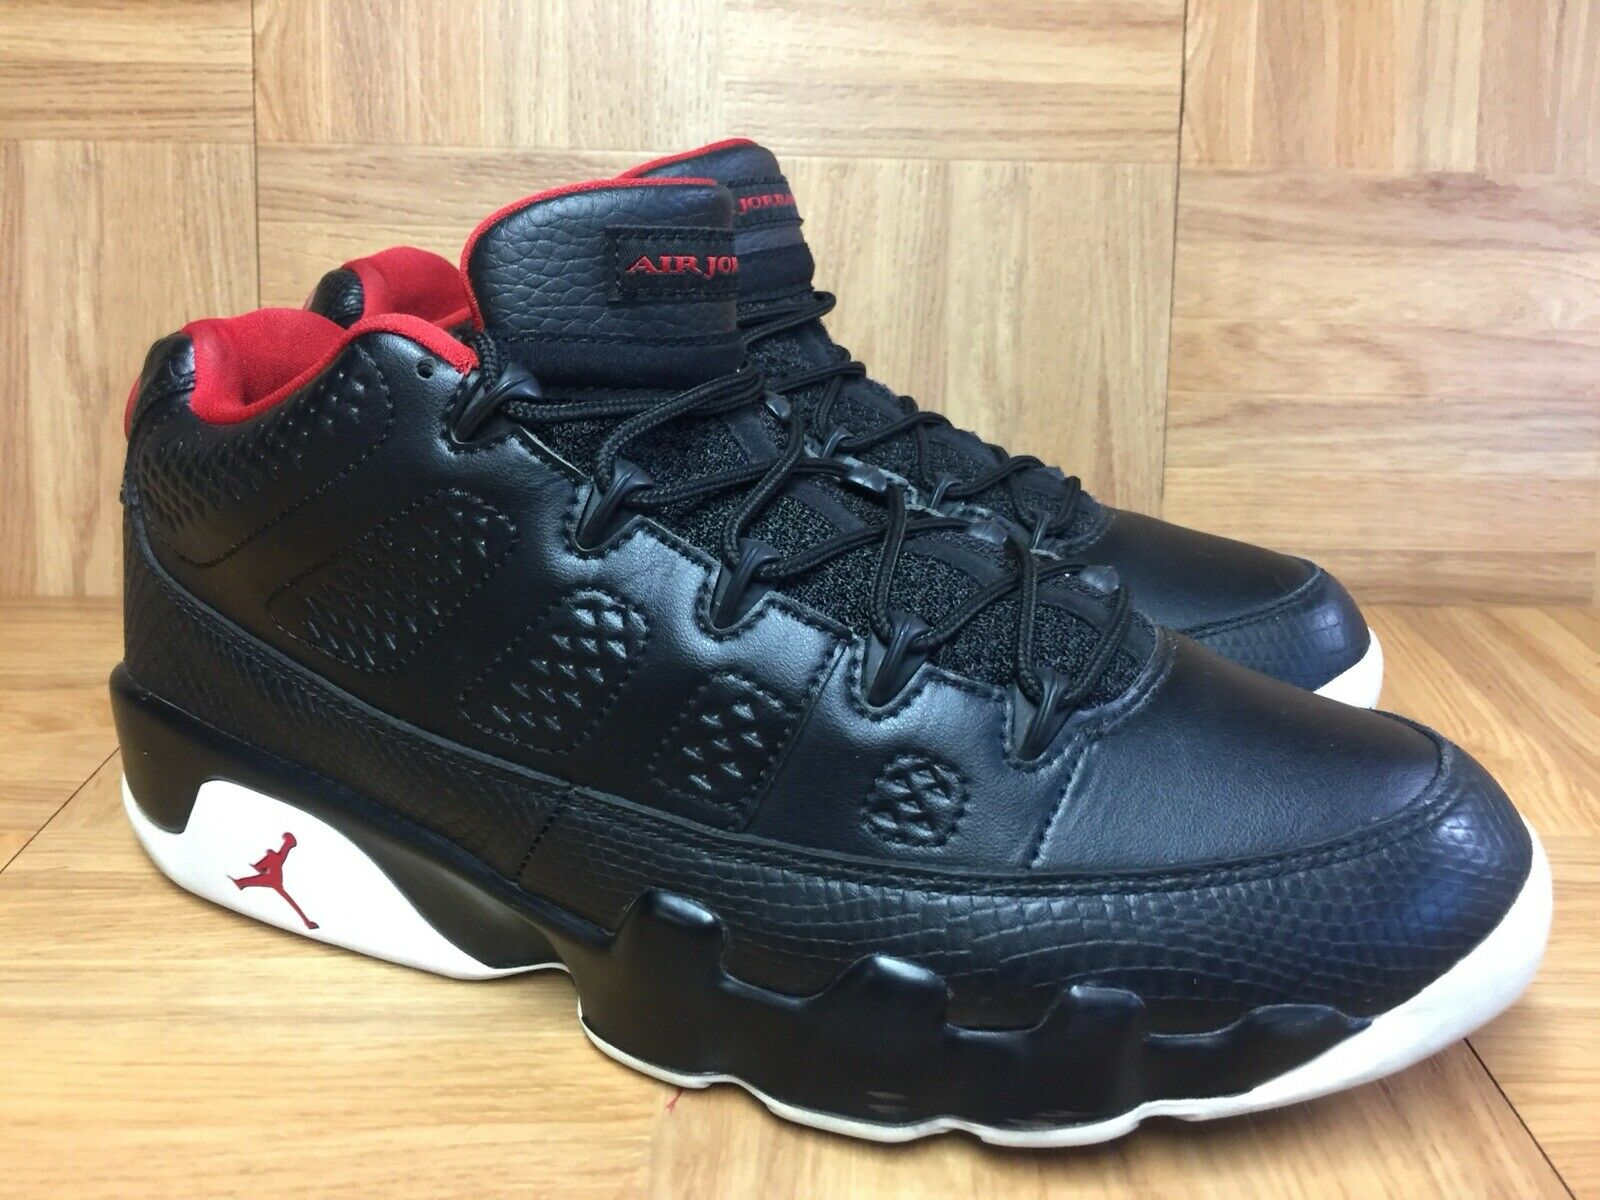 6a7a87ac82a RARE Nike Air Jordan 9 IX LOW Black Leather Leather Leather Gym Red Bred SZ  10.5 832822-001 7e9c6a